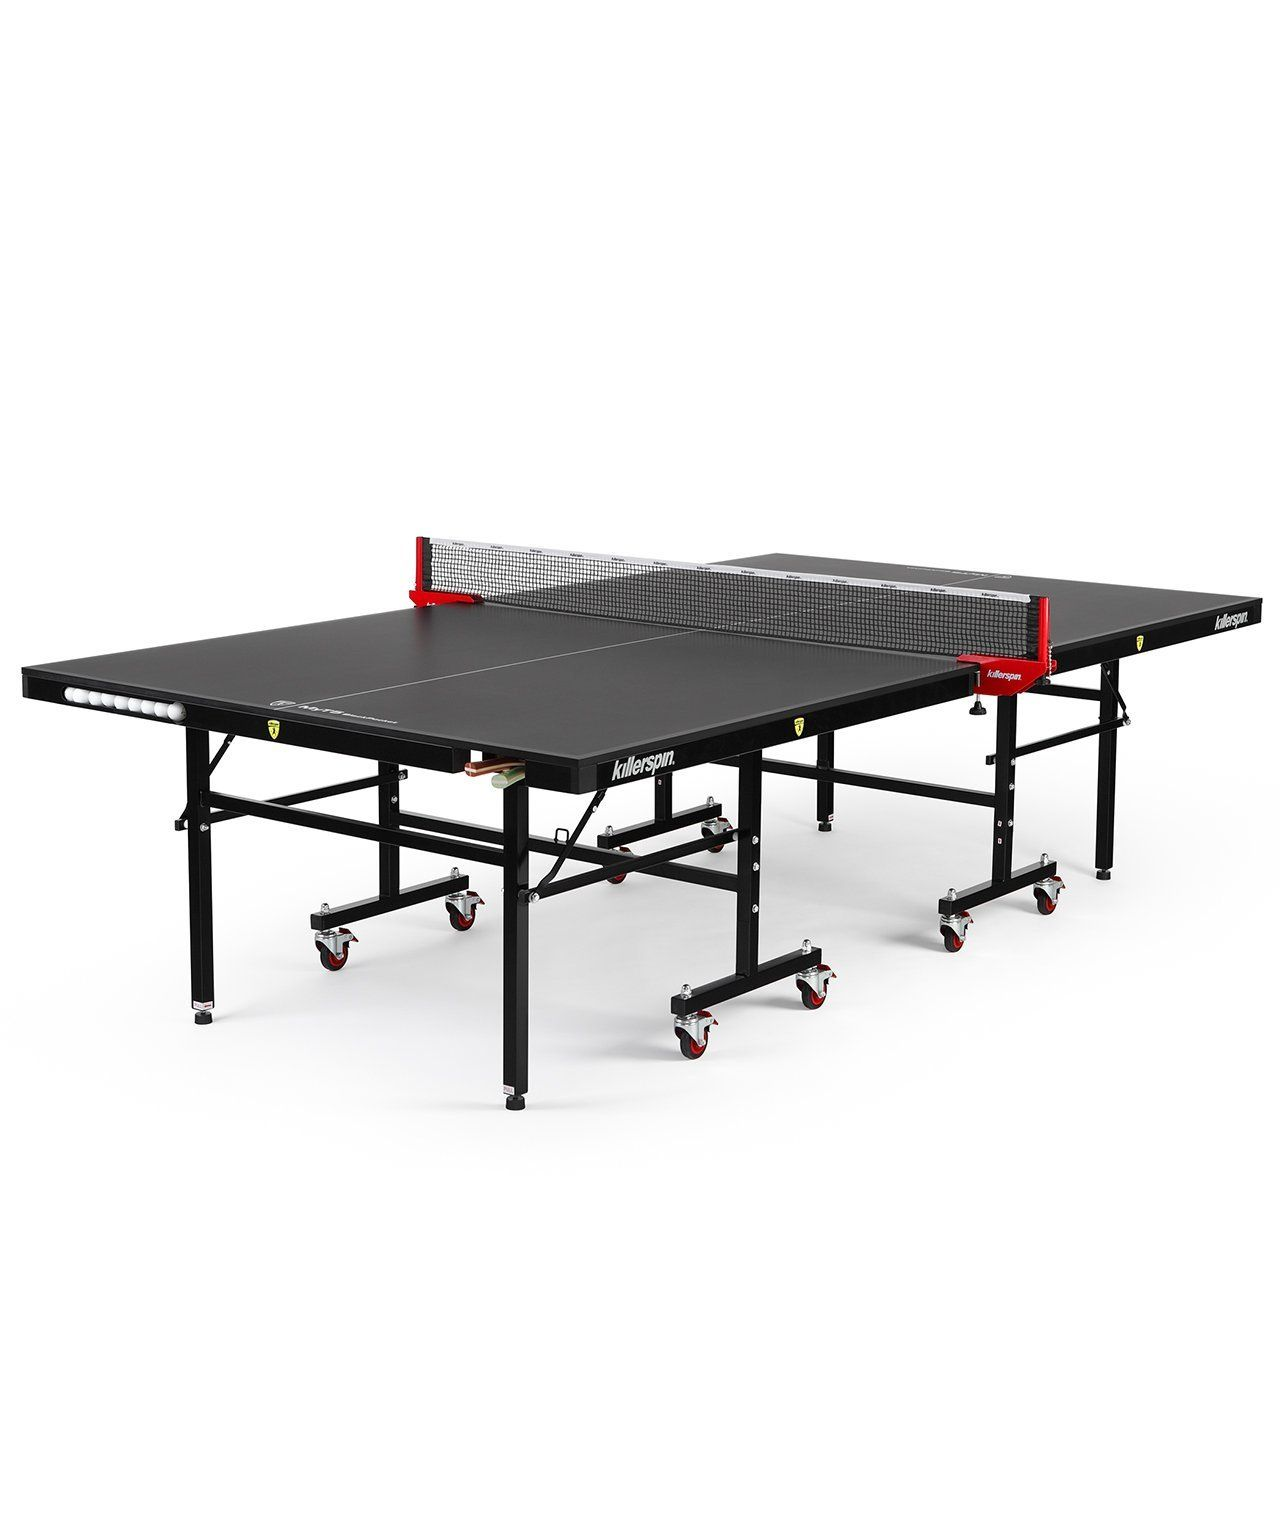 Myt5 Indoor Table Tennis Table Various Colors The Myt5 Folding Ping Pong Table Series Is A Fusion Outdoor Table Tennis Table Ping Pong Table Outdoor Tables